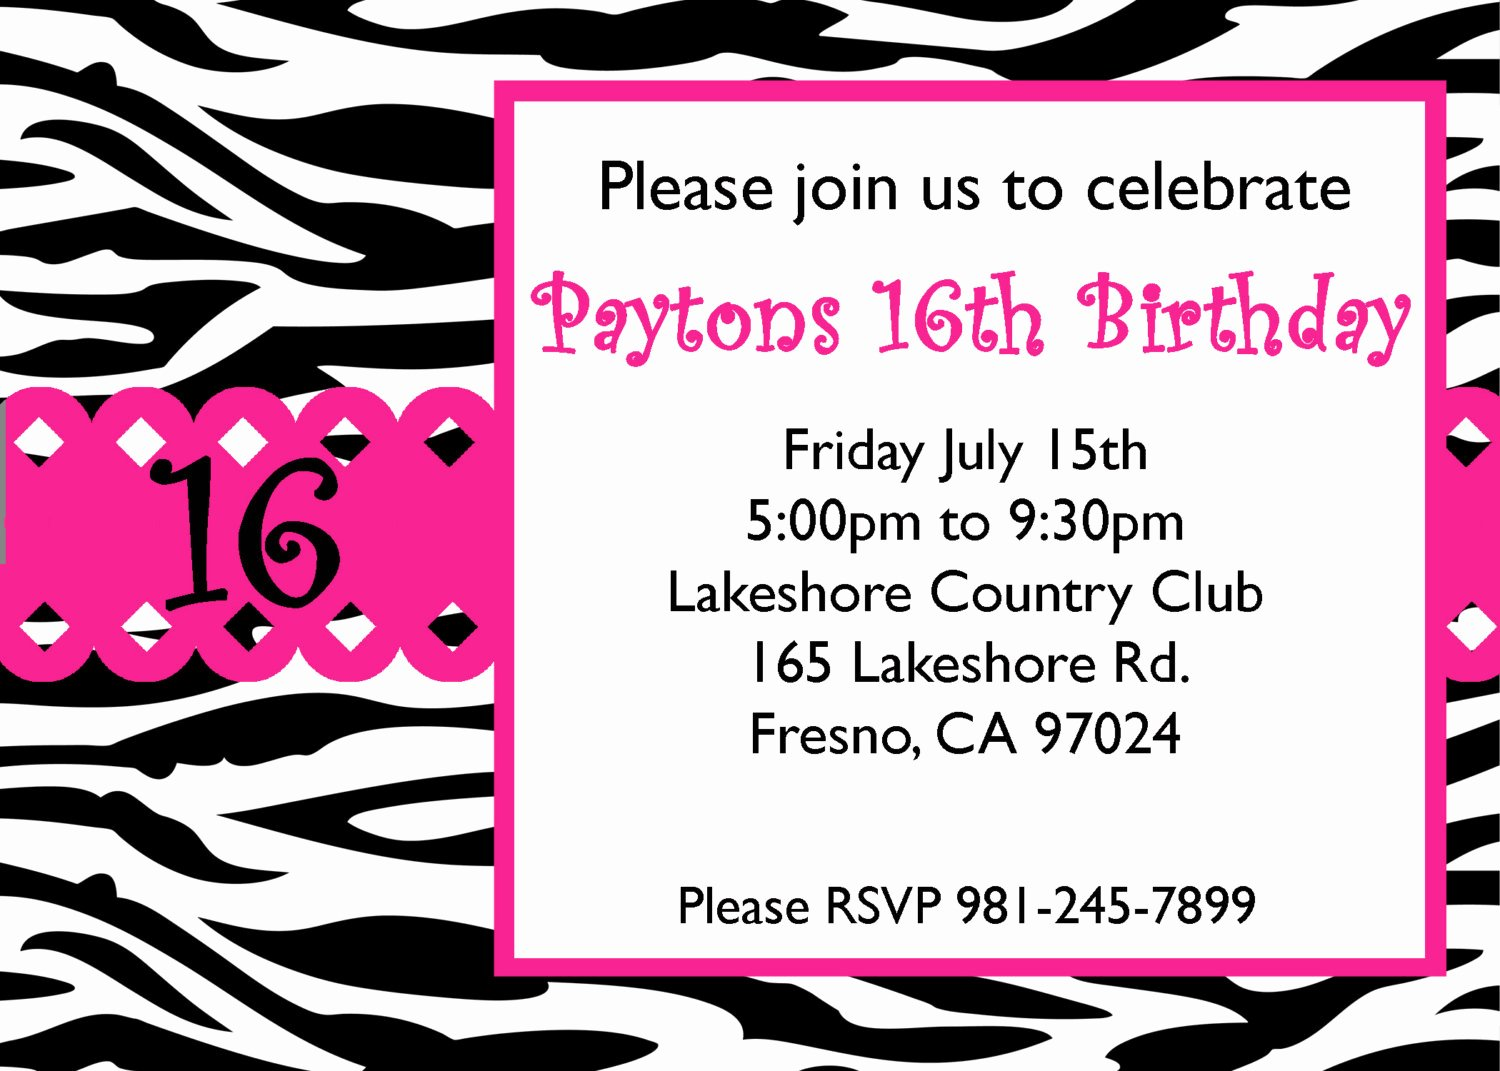 16th Birthday Invitation Templates Free Luxury Free Sweet 16 Birthday Invitations Templates